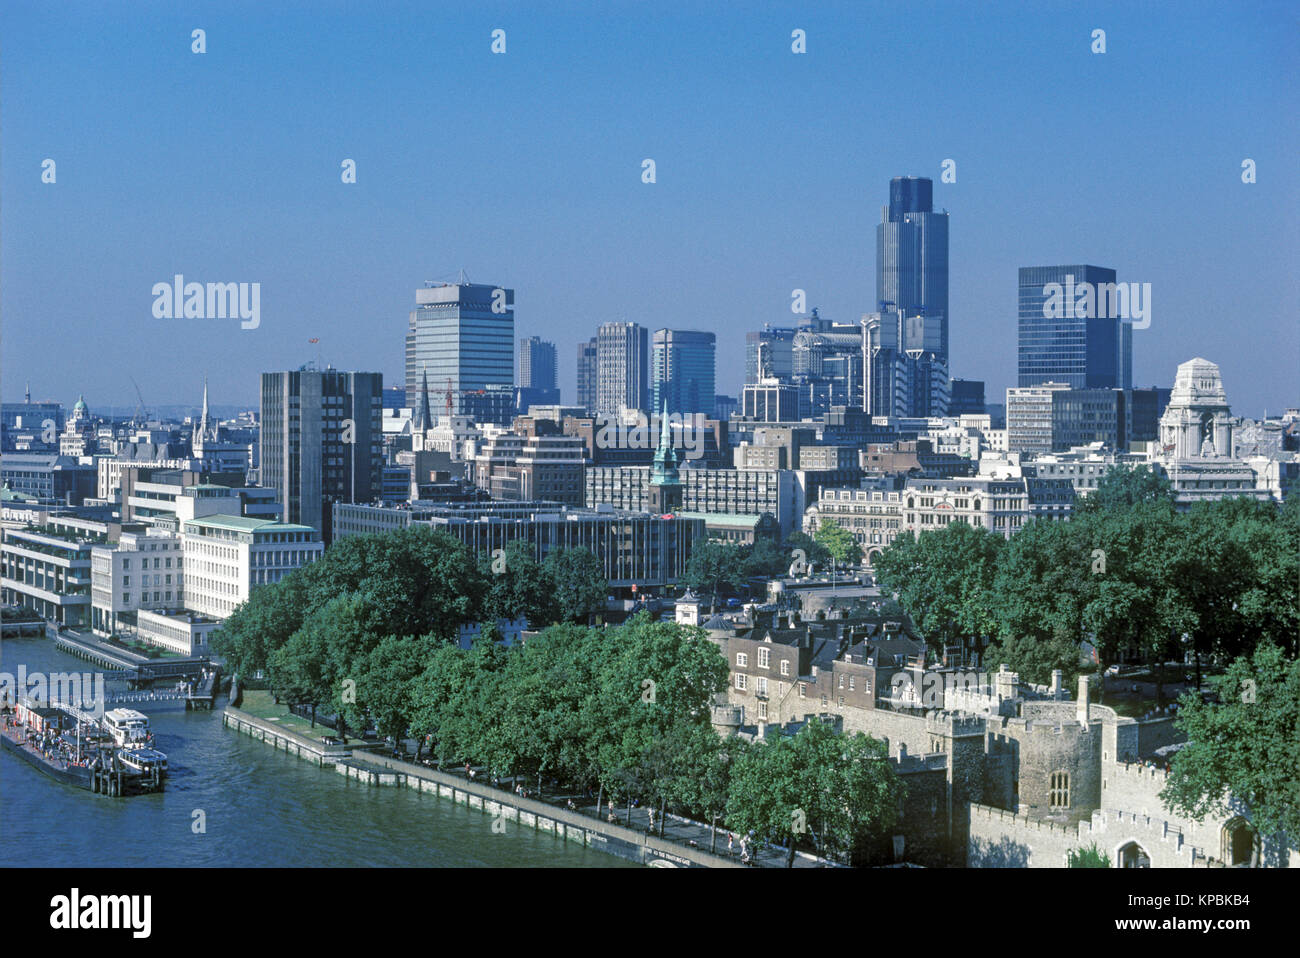 1980s london skyline stock photos 1980s london skyline. Black Bedroom Furniture Sets. Home Design Ideas